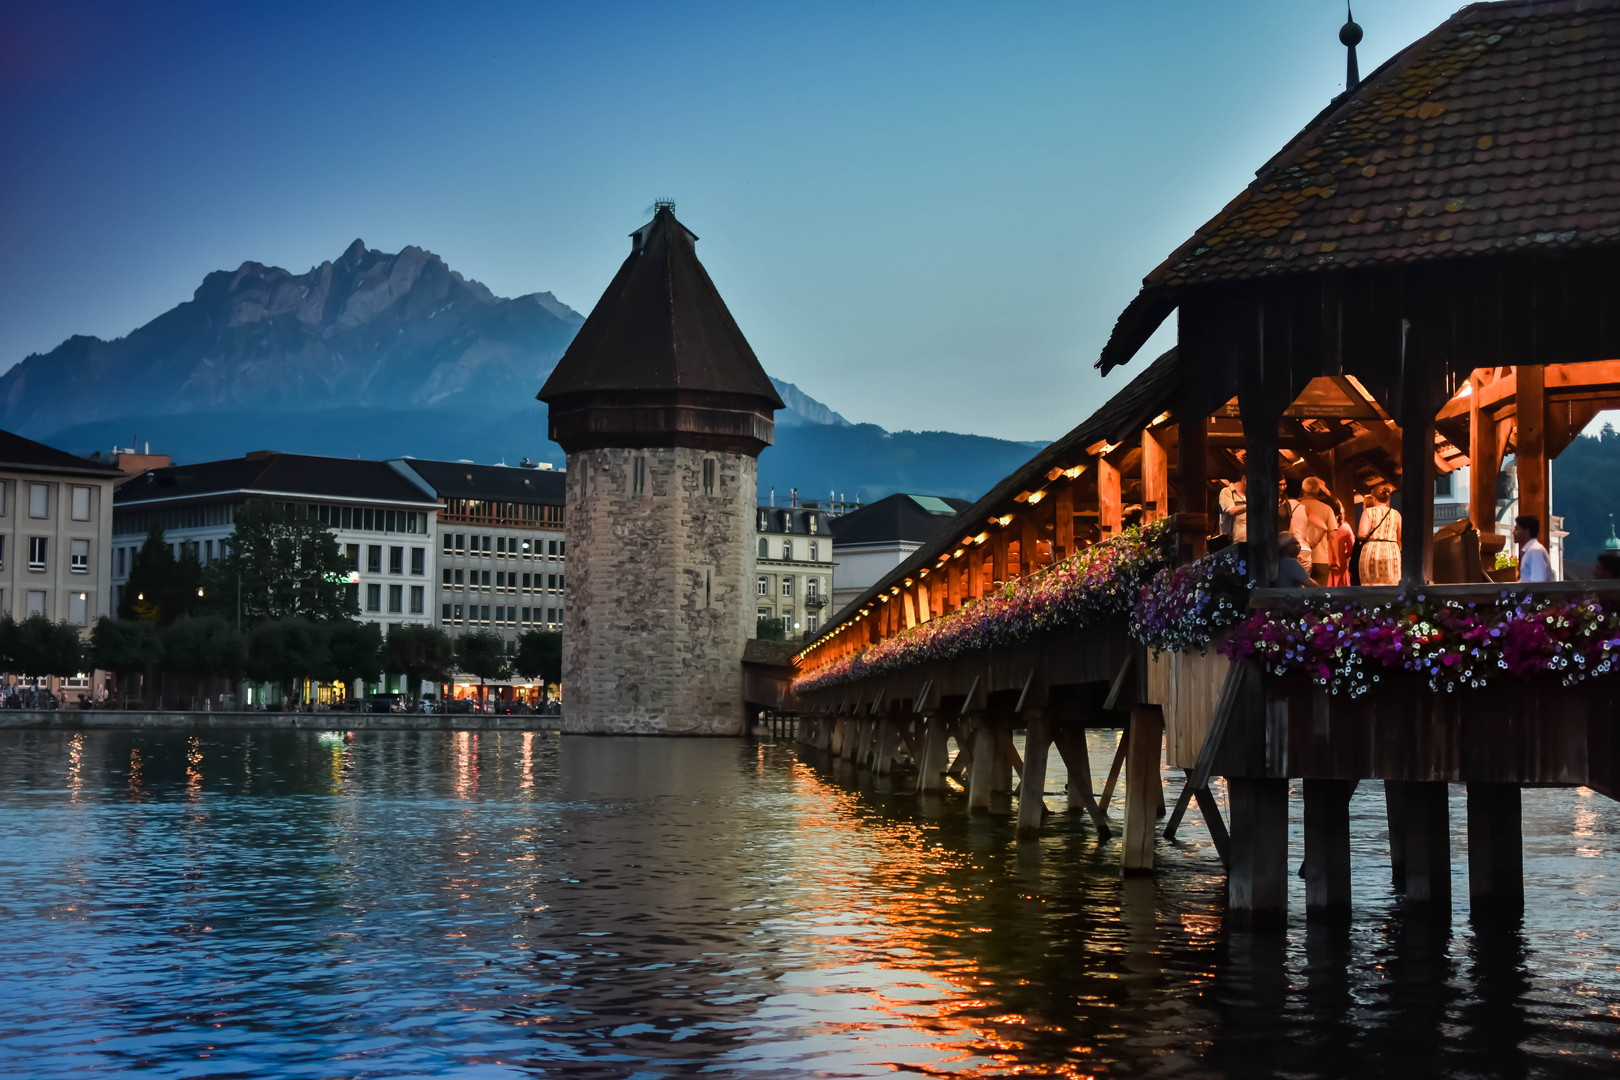 Bridging the past and present of Lucerne